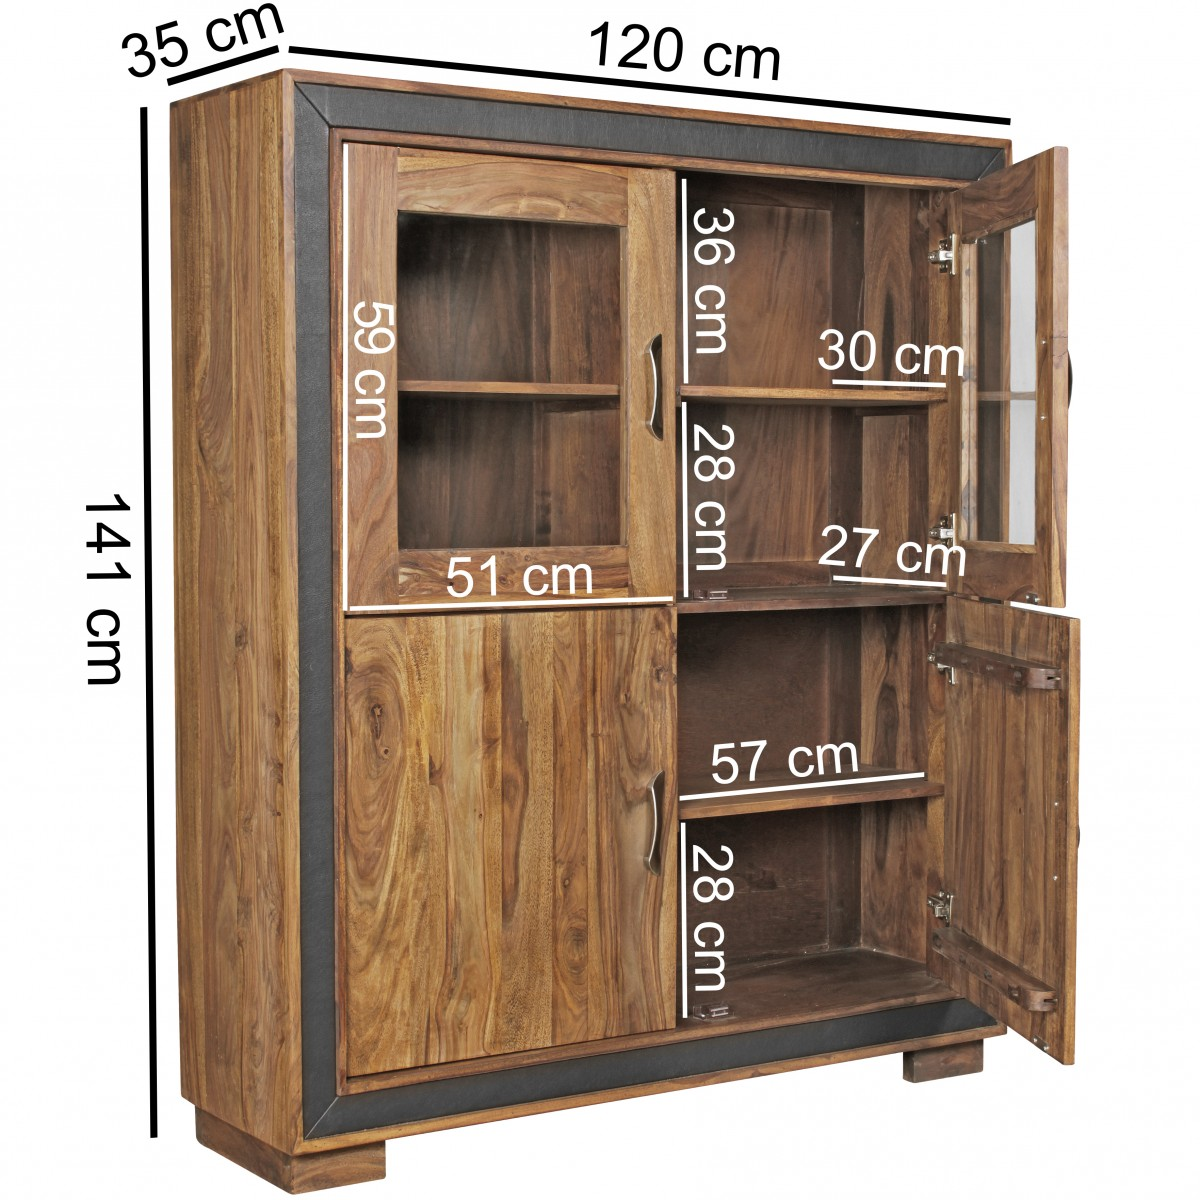 massivholz vitrine excellent toskana vitrine glasvitrine trig pinie massiv massivholz mit. Black Bedroom Furniture Sets. Home Design Ideas